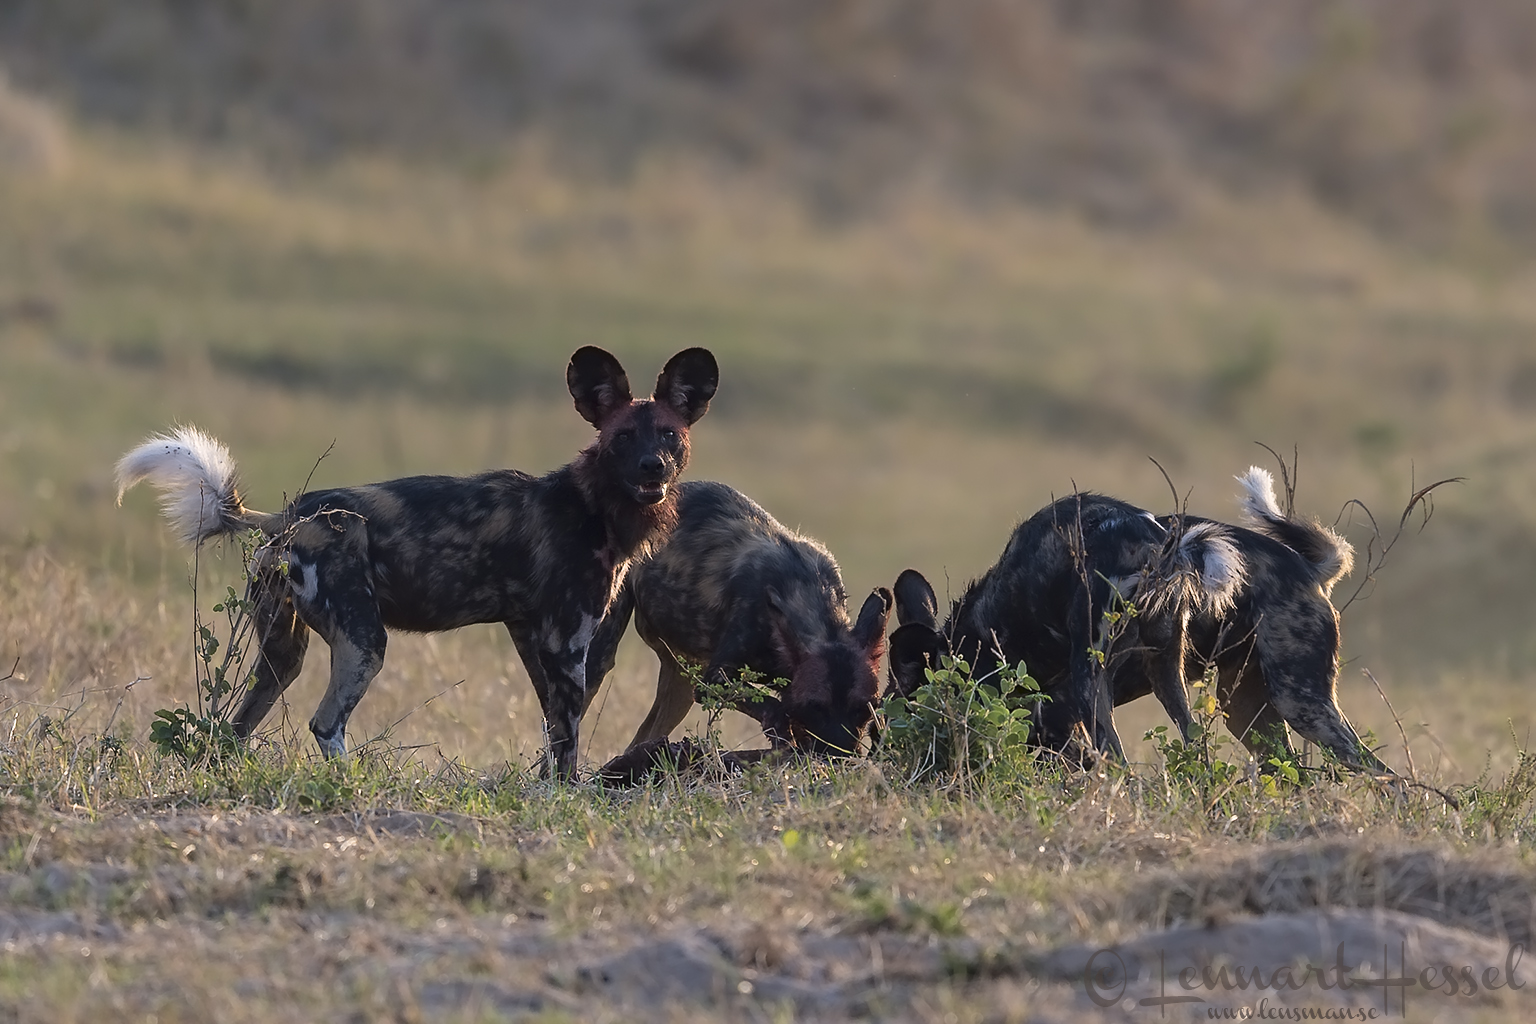 Painted Dogs at kill hunt Mana Pools National Park